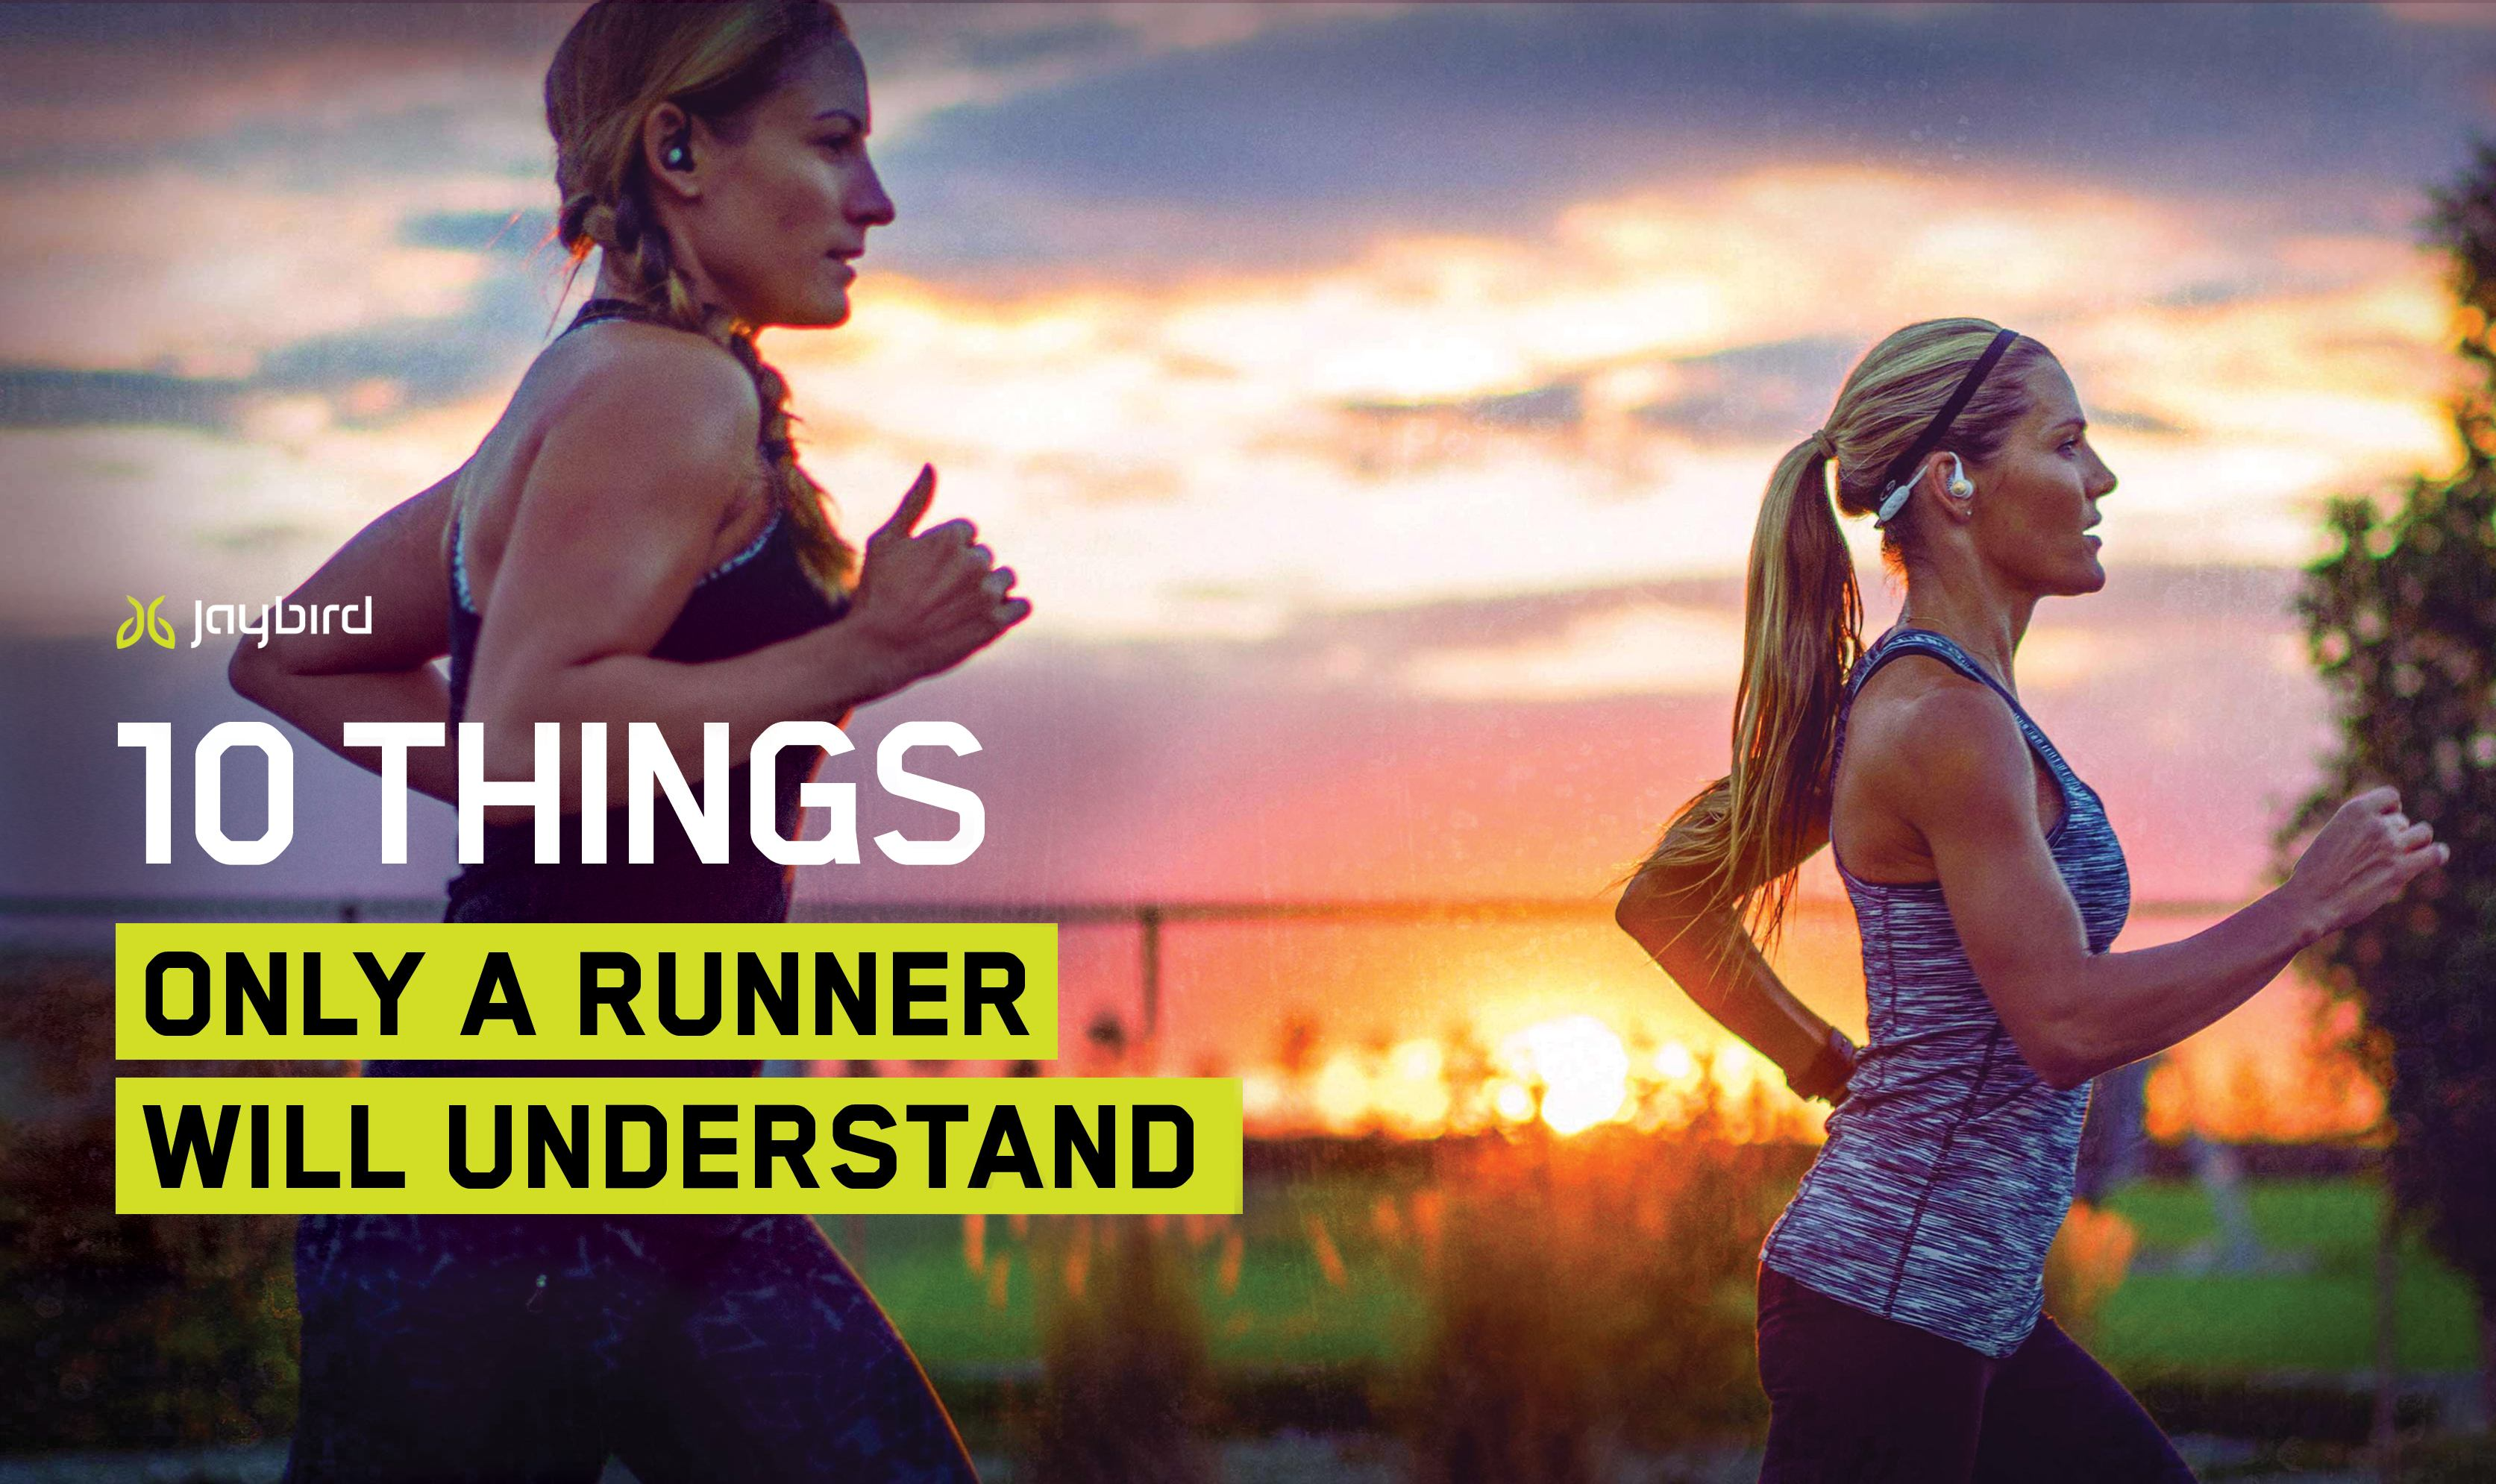 10 Things Only a Runner Will Understand